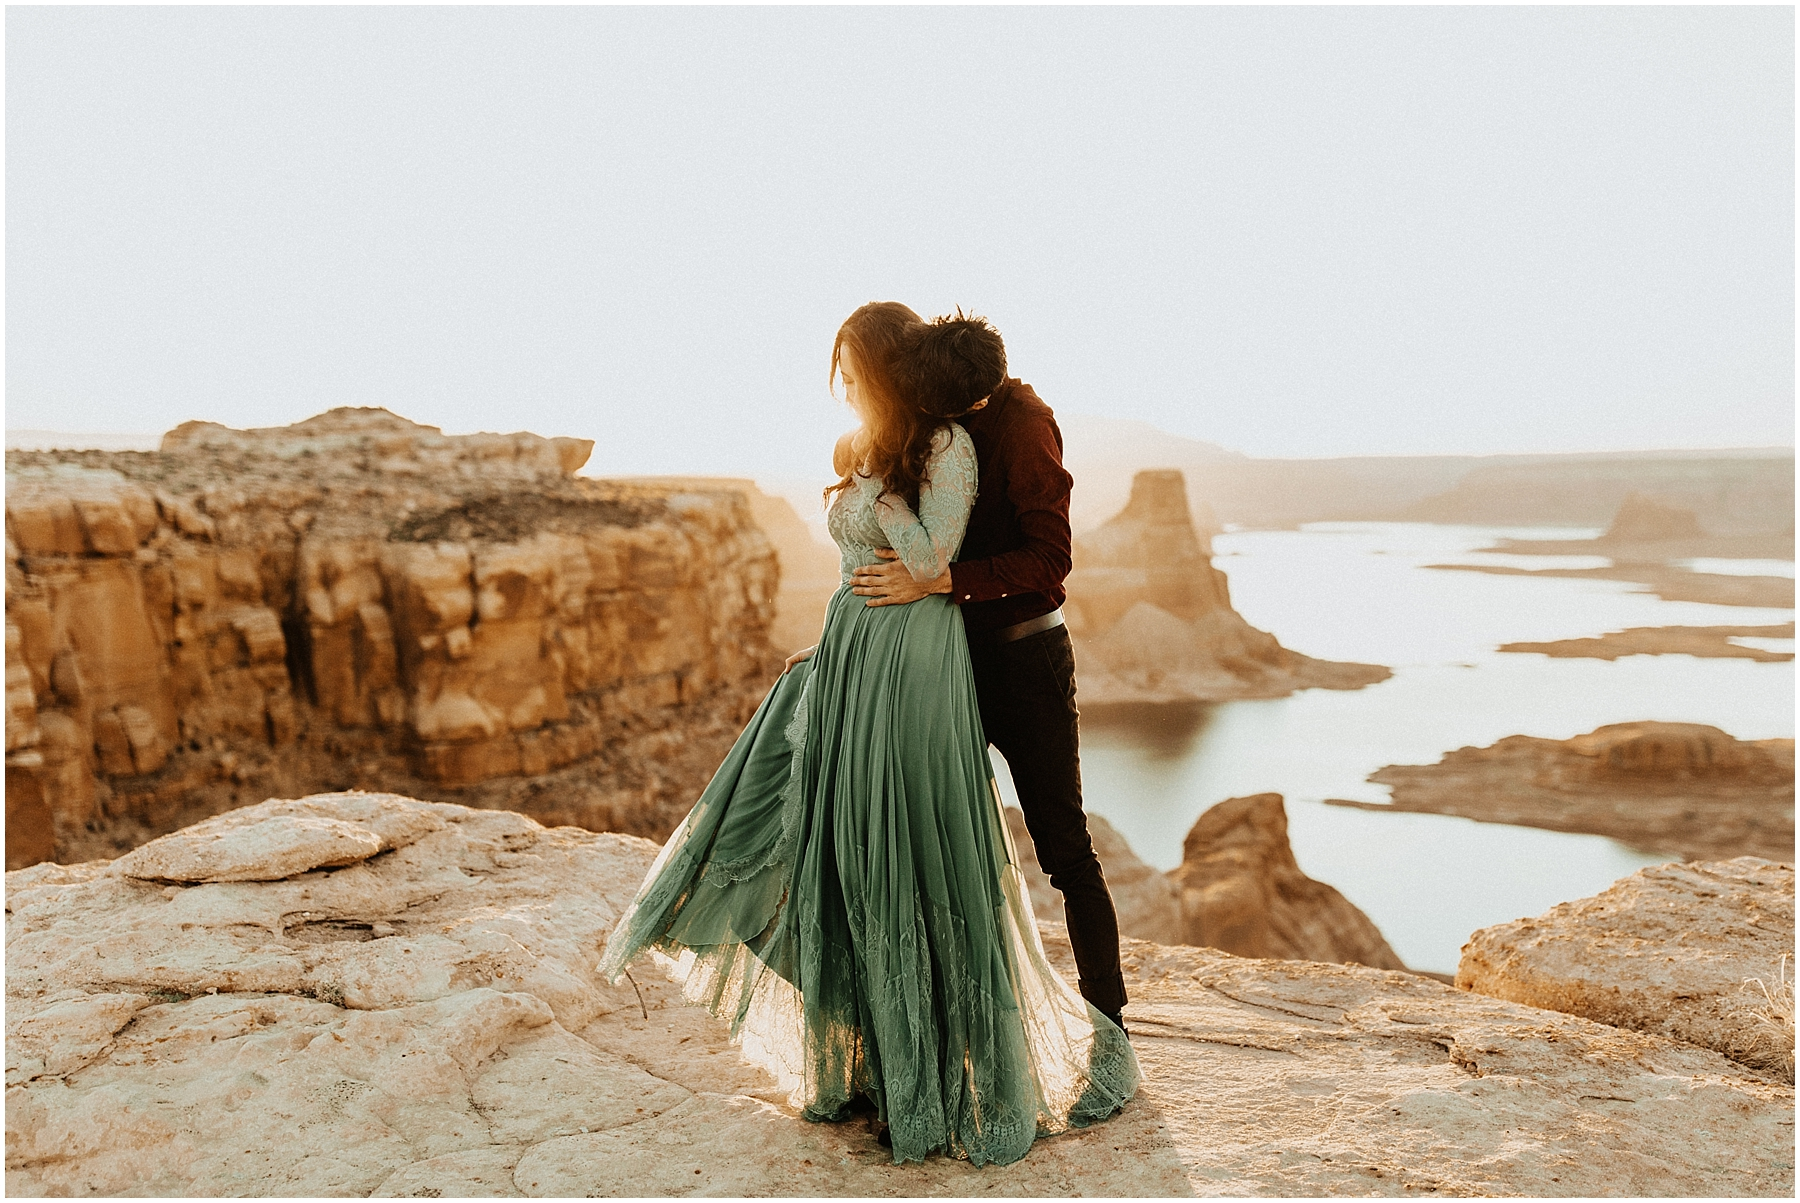 lake_powell_engagements_0022.jpg